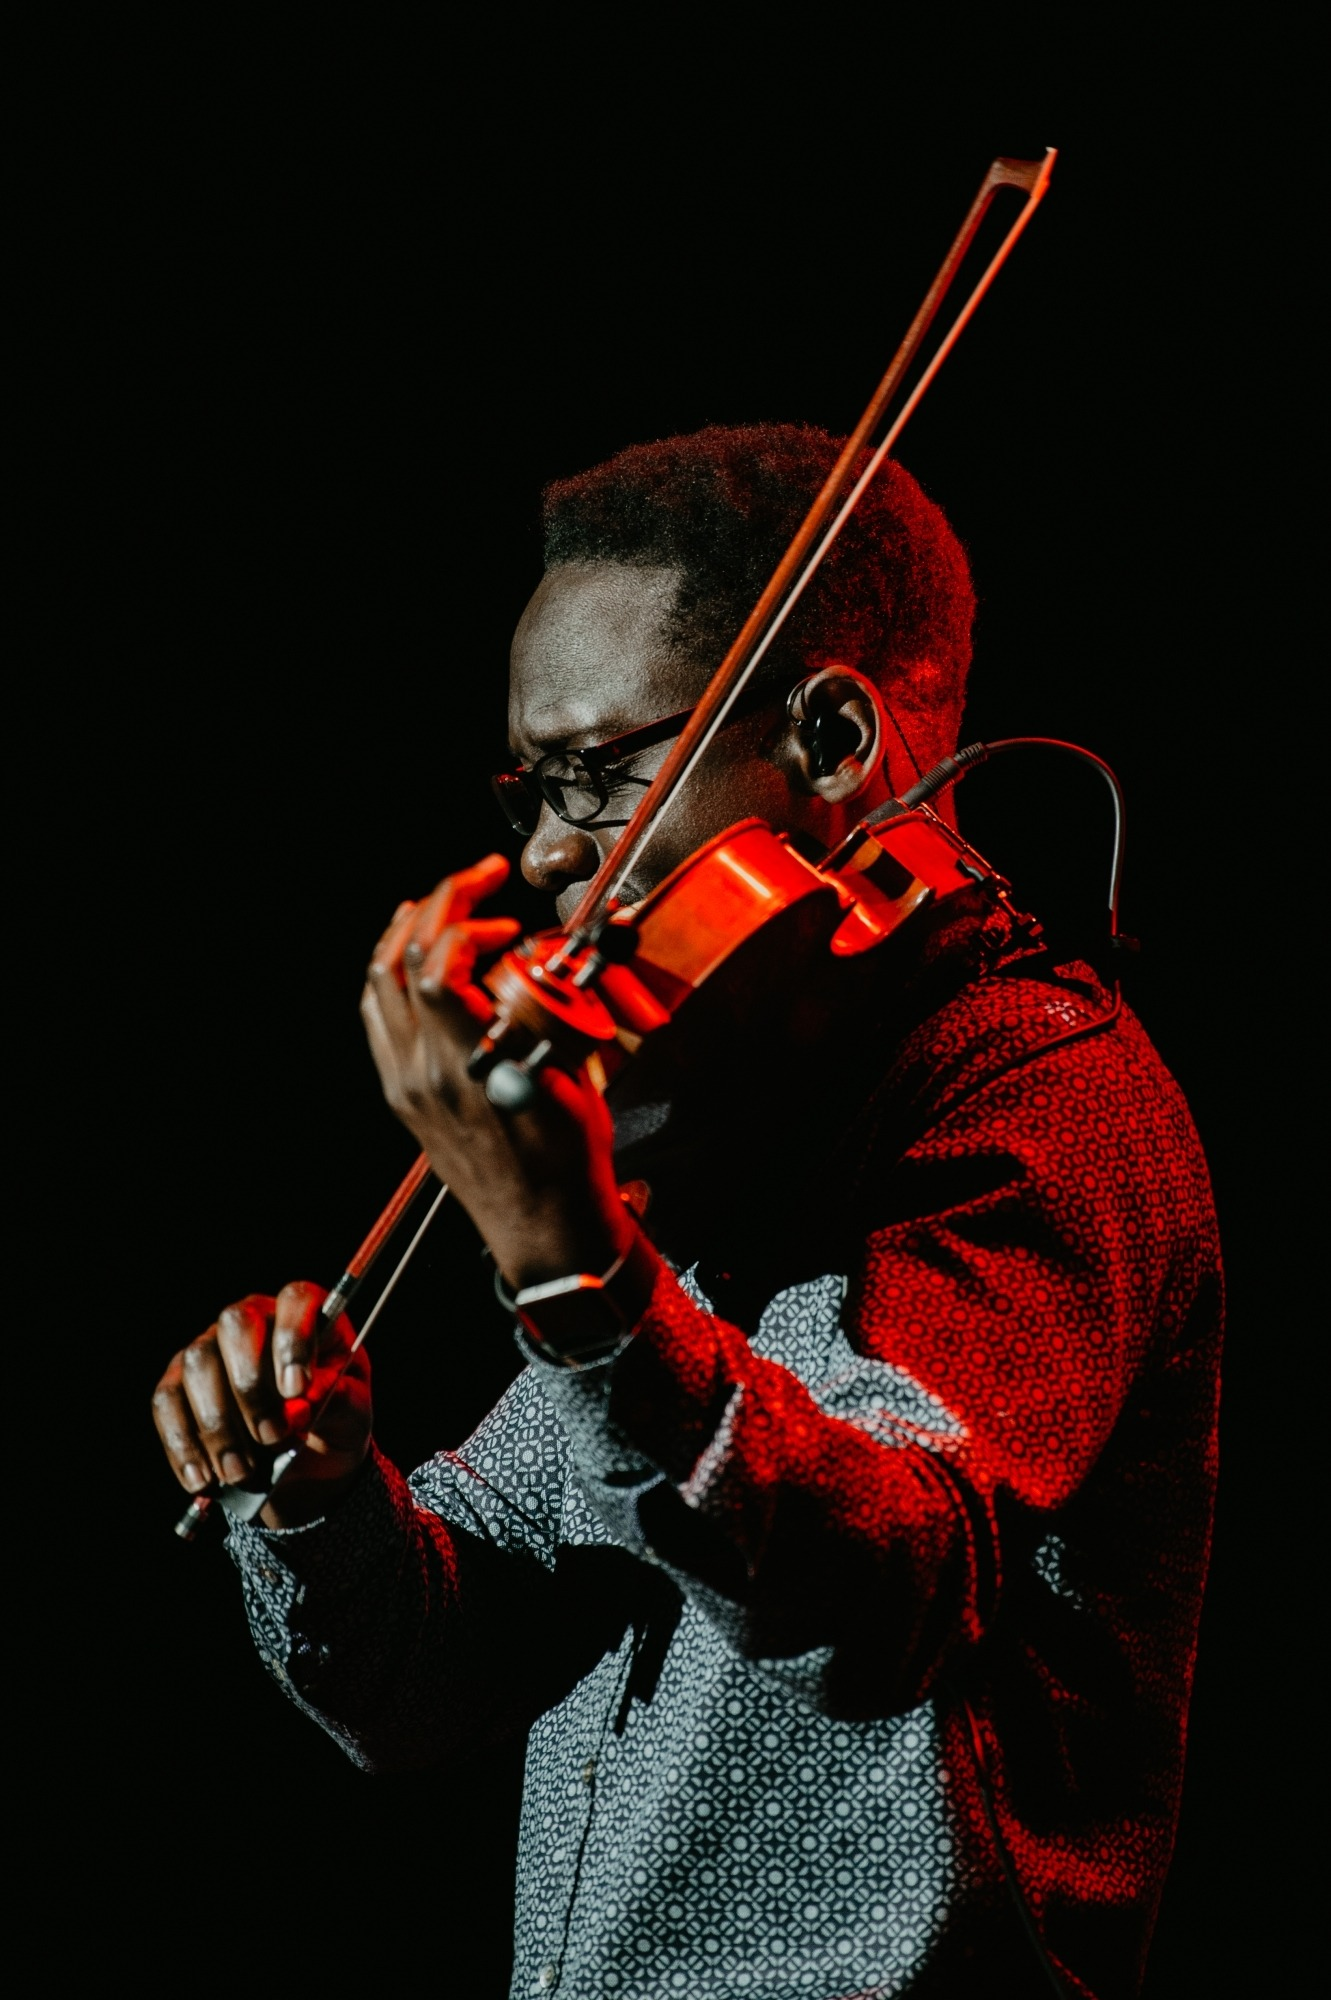 Image of one of the members of Black Violin playing his violin